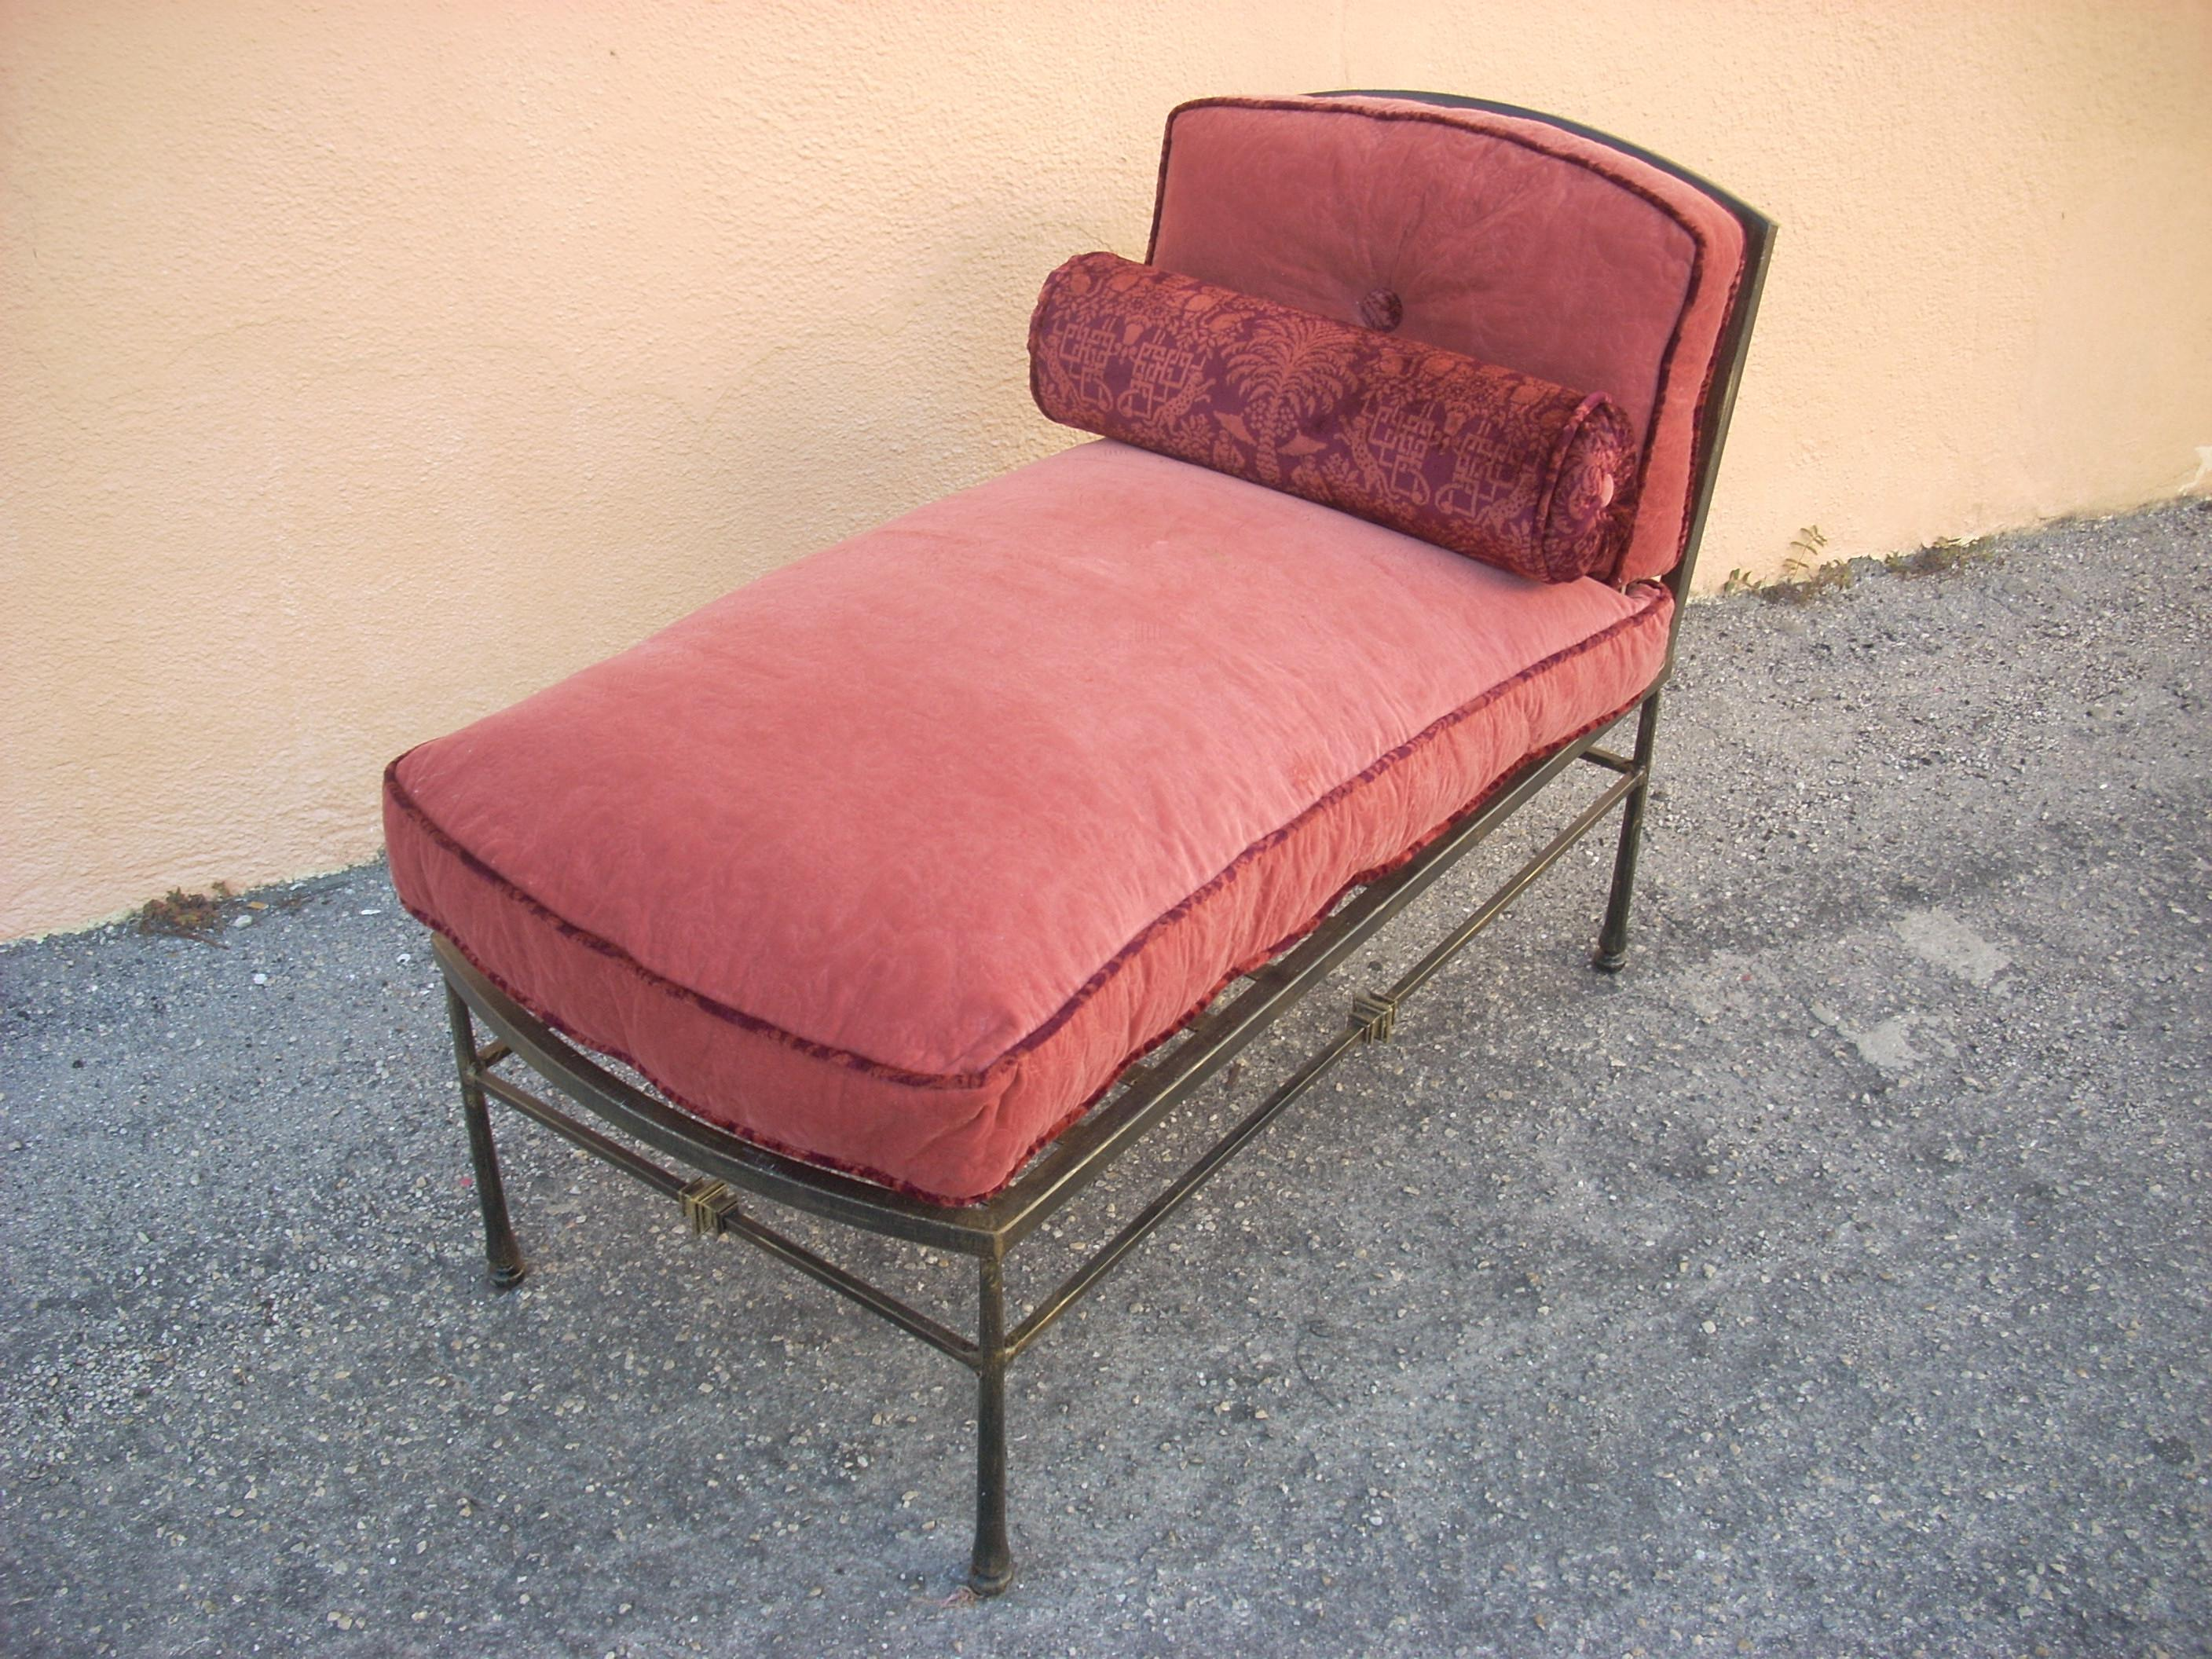 Classic Metal Chaise With Custom Cushions - Image 2 of 11  sc 1 st  Chairish : classic chaise - Sectionals, Sofas & Couches